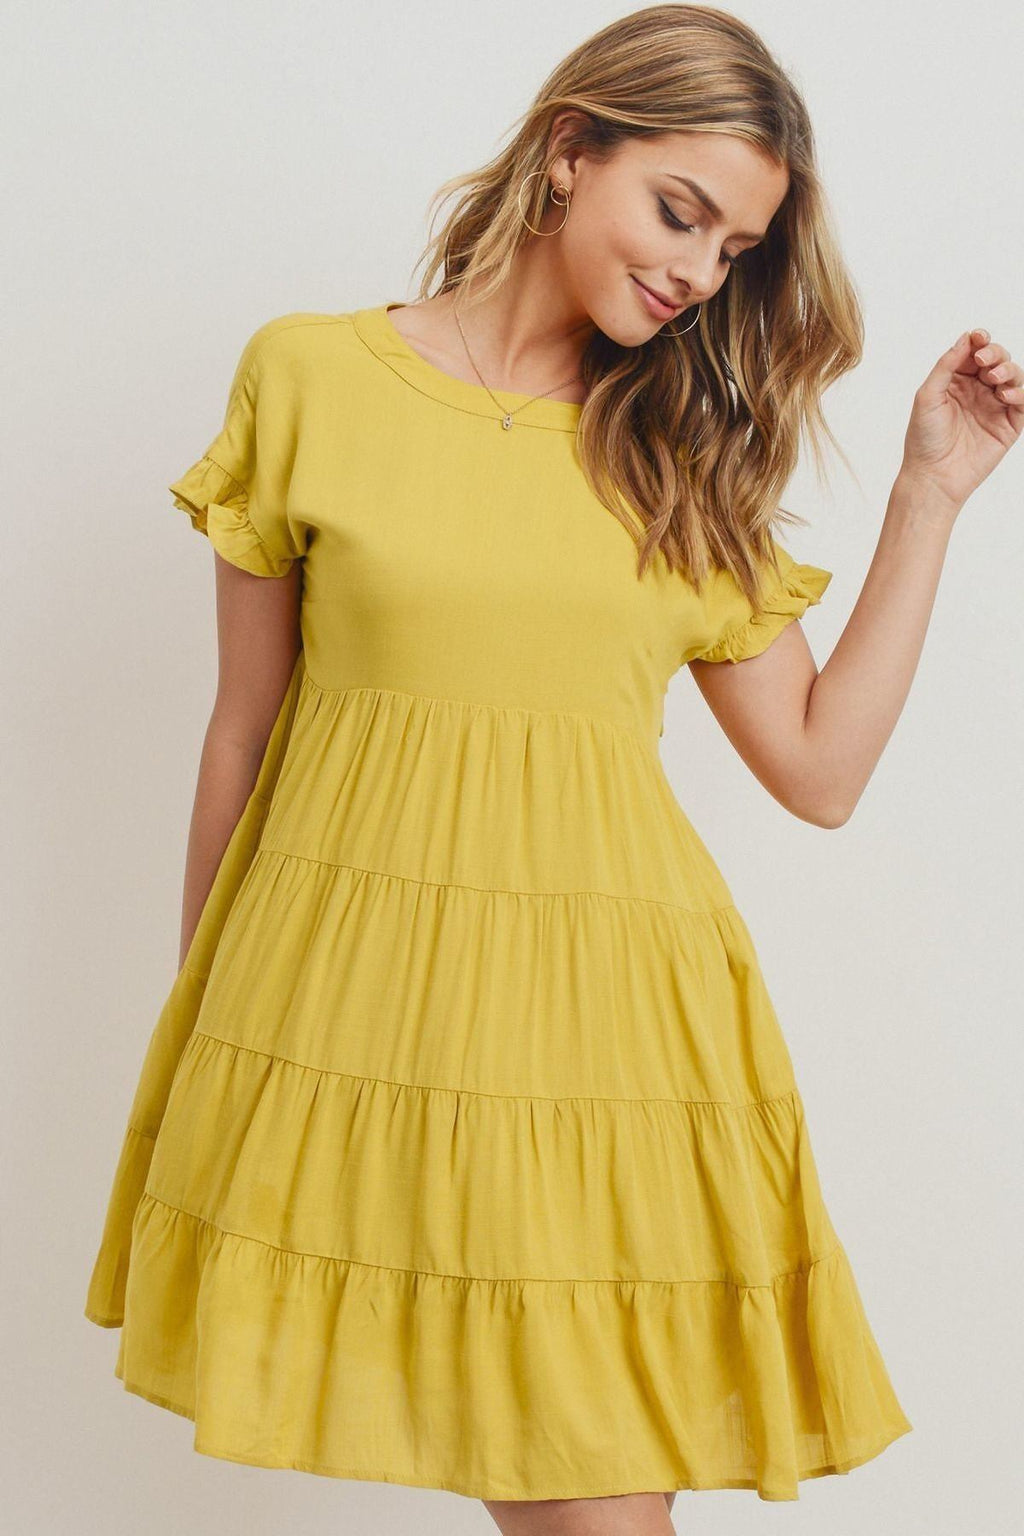 CAN CAN RUFFLED DRESS